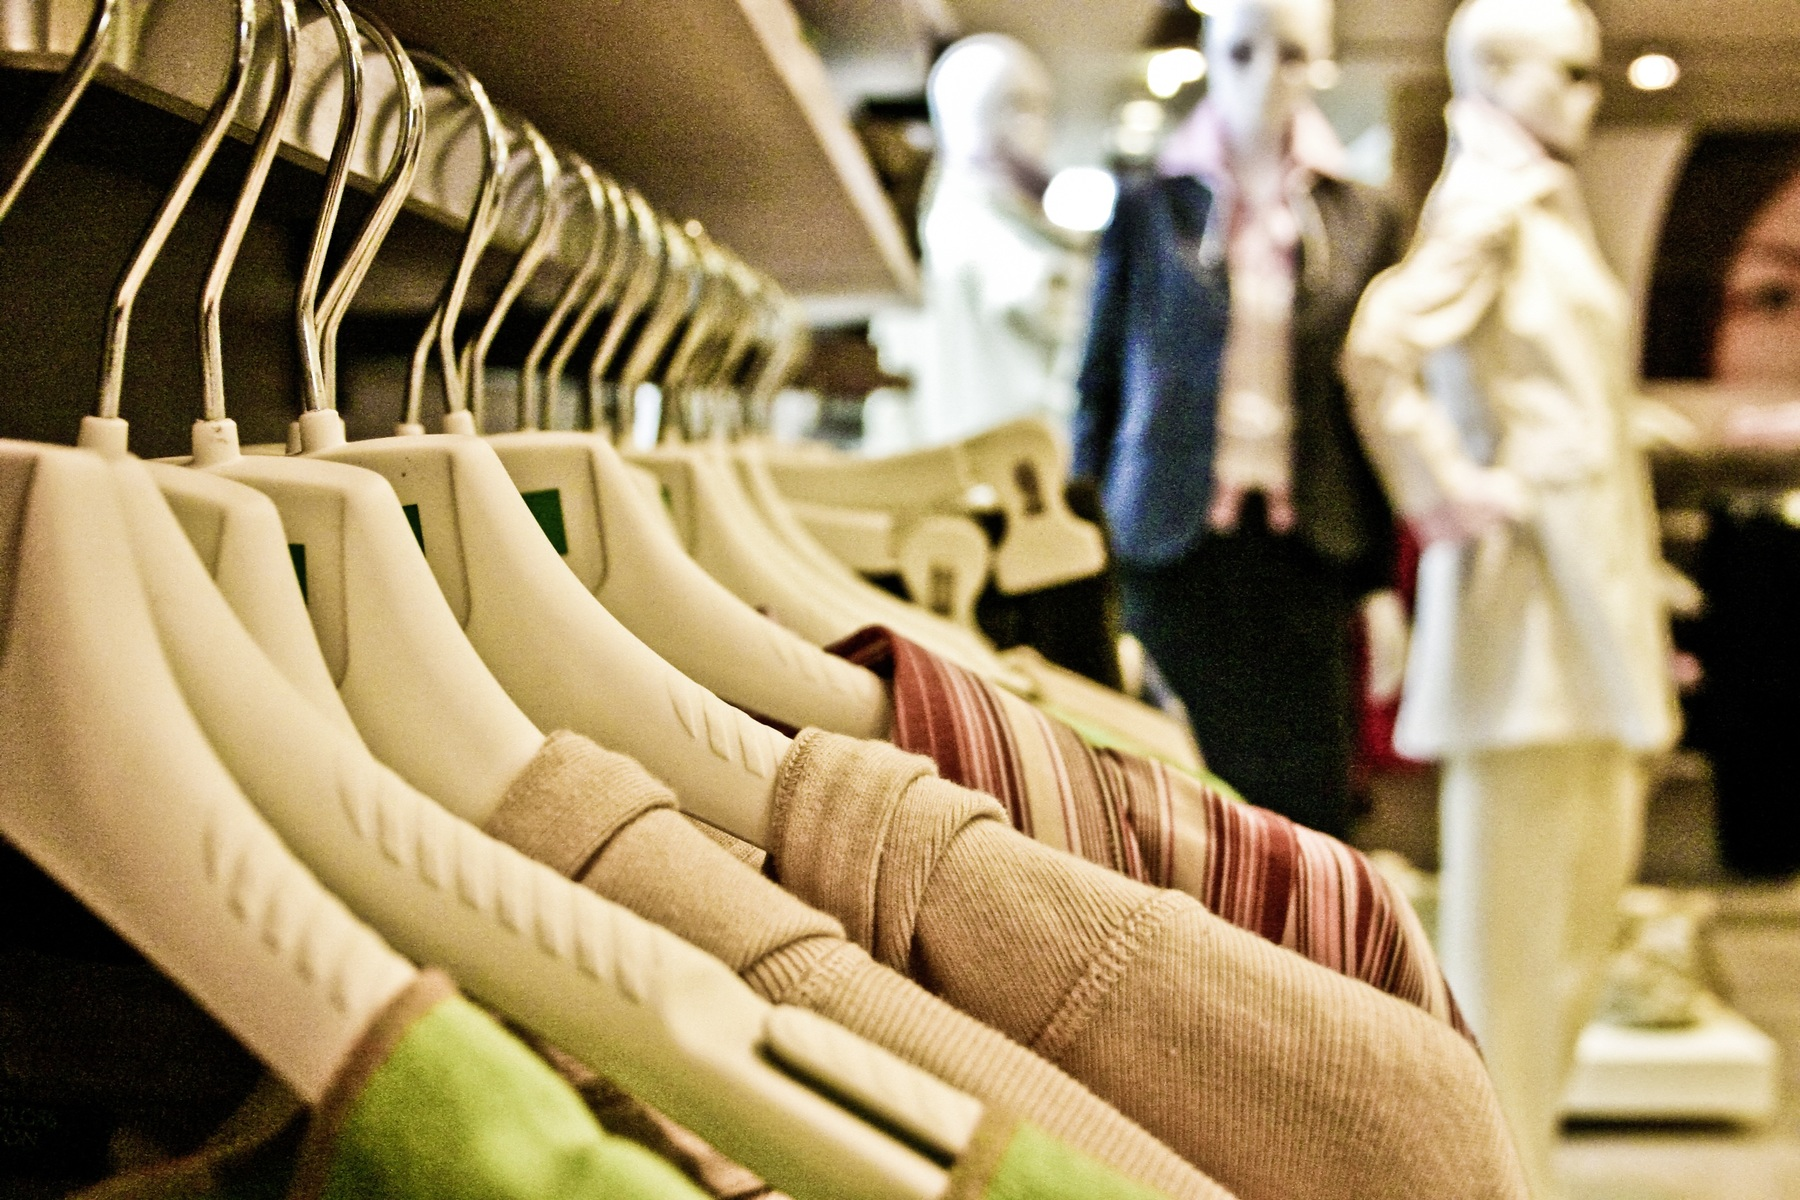 Topkhana Market-Best Shopping Spot in Indore to Satisfy the Shopaholic in You